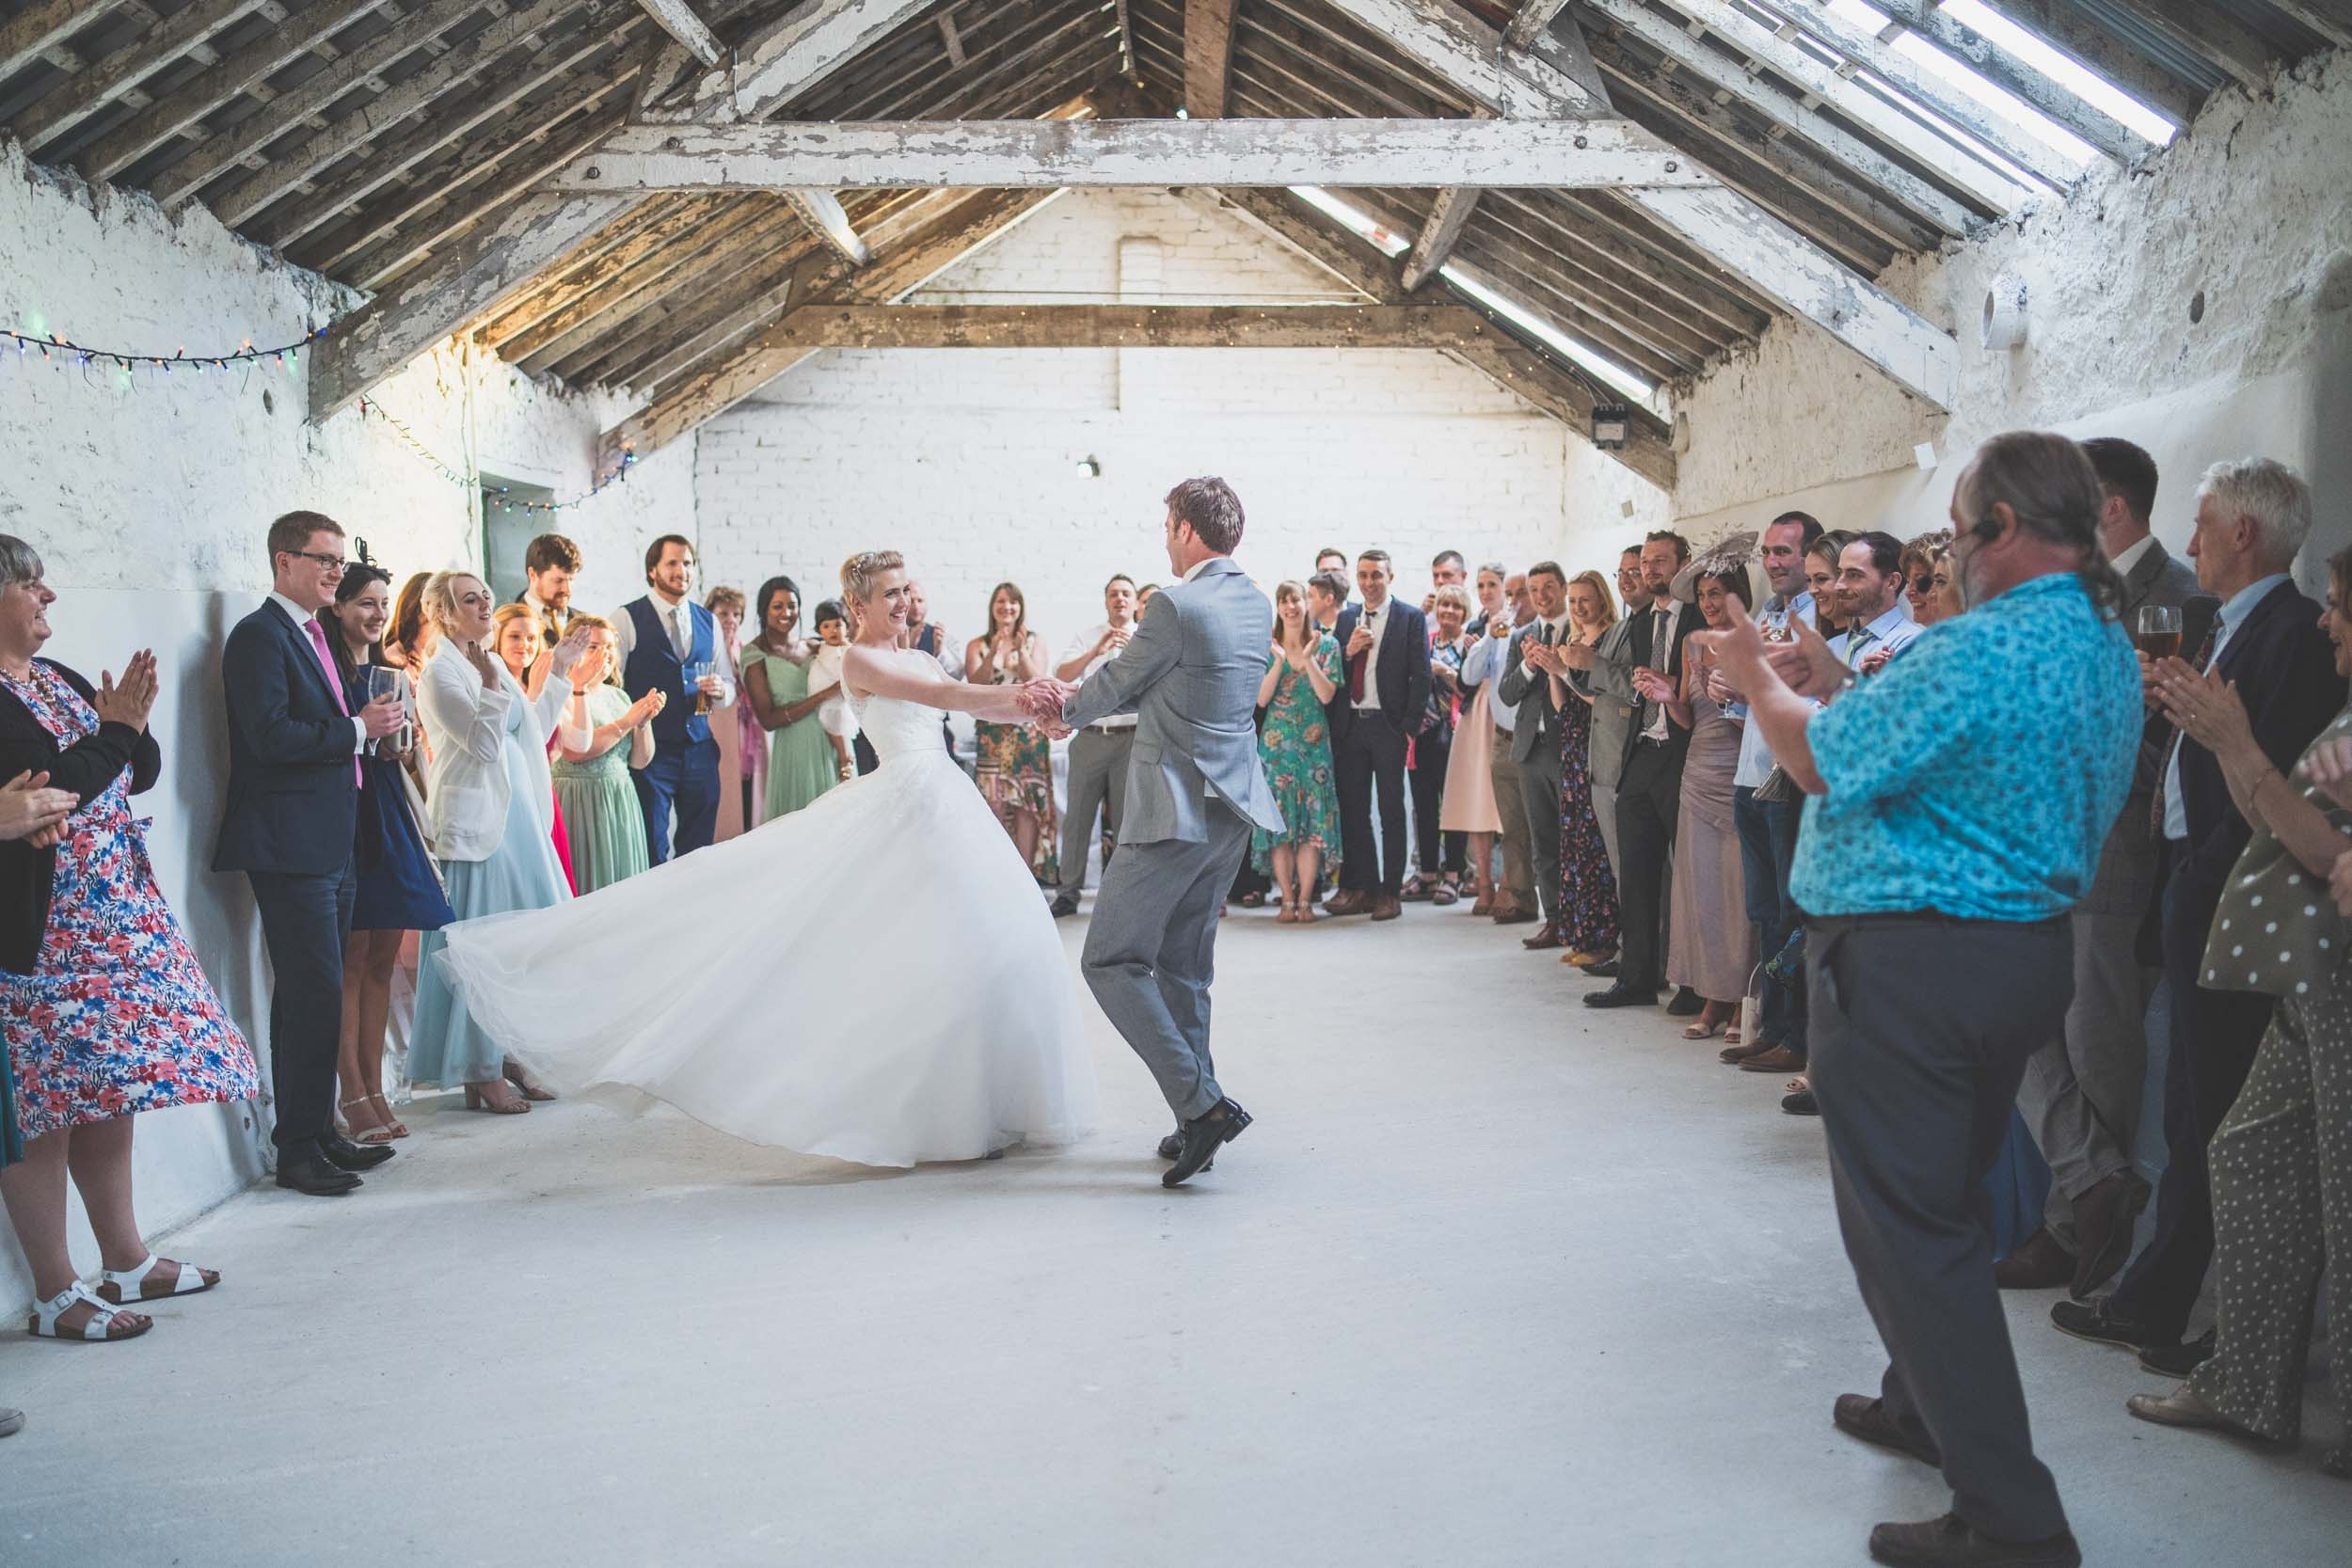 Bride, groom and wedding ceilidh band. First dance in a barn in North Wales